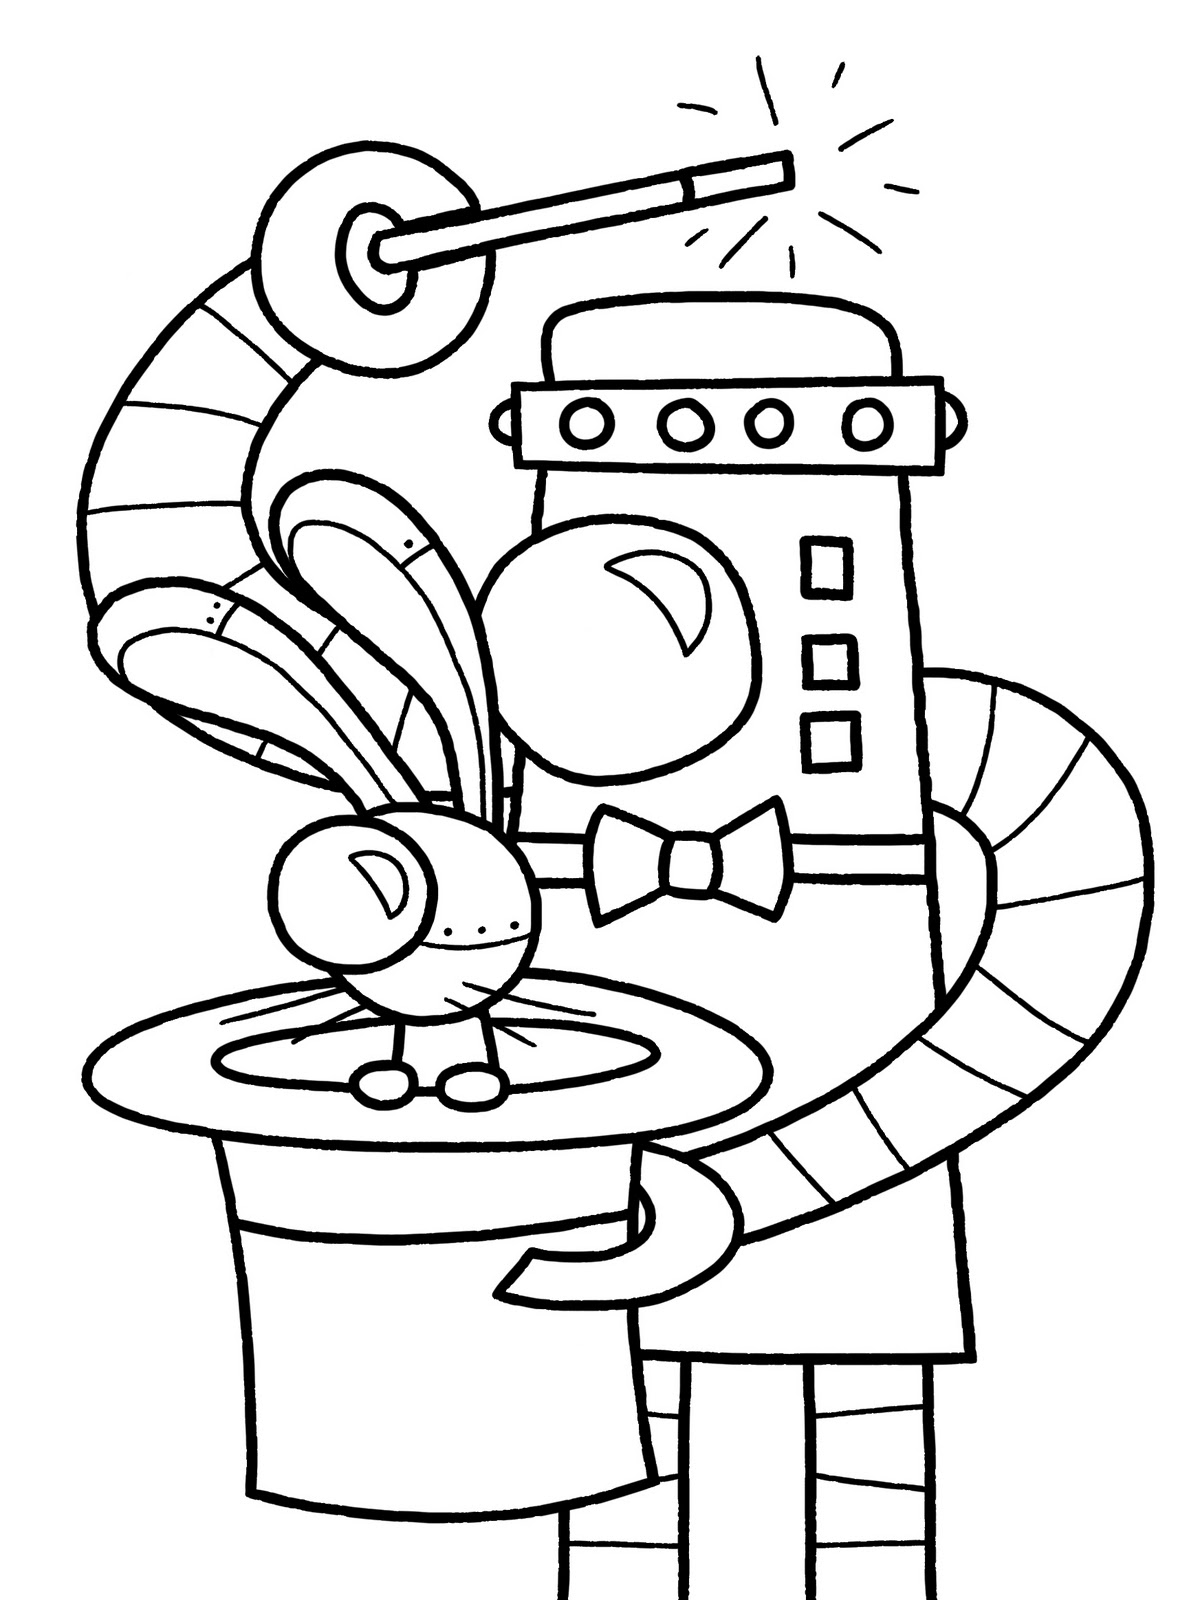 coloring robot drawing robot coloring pages beep beep robot coloring drawing